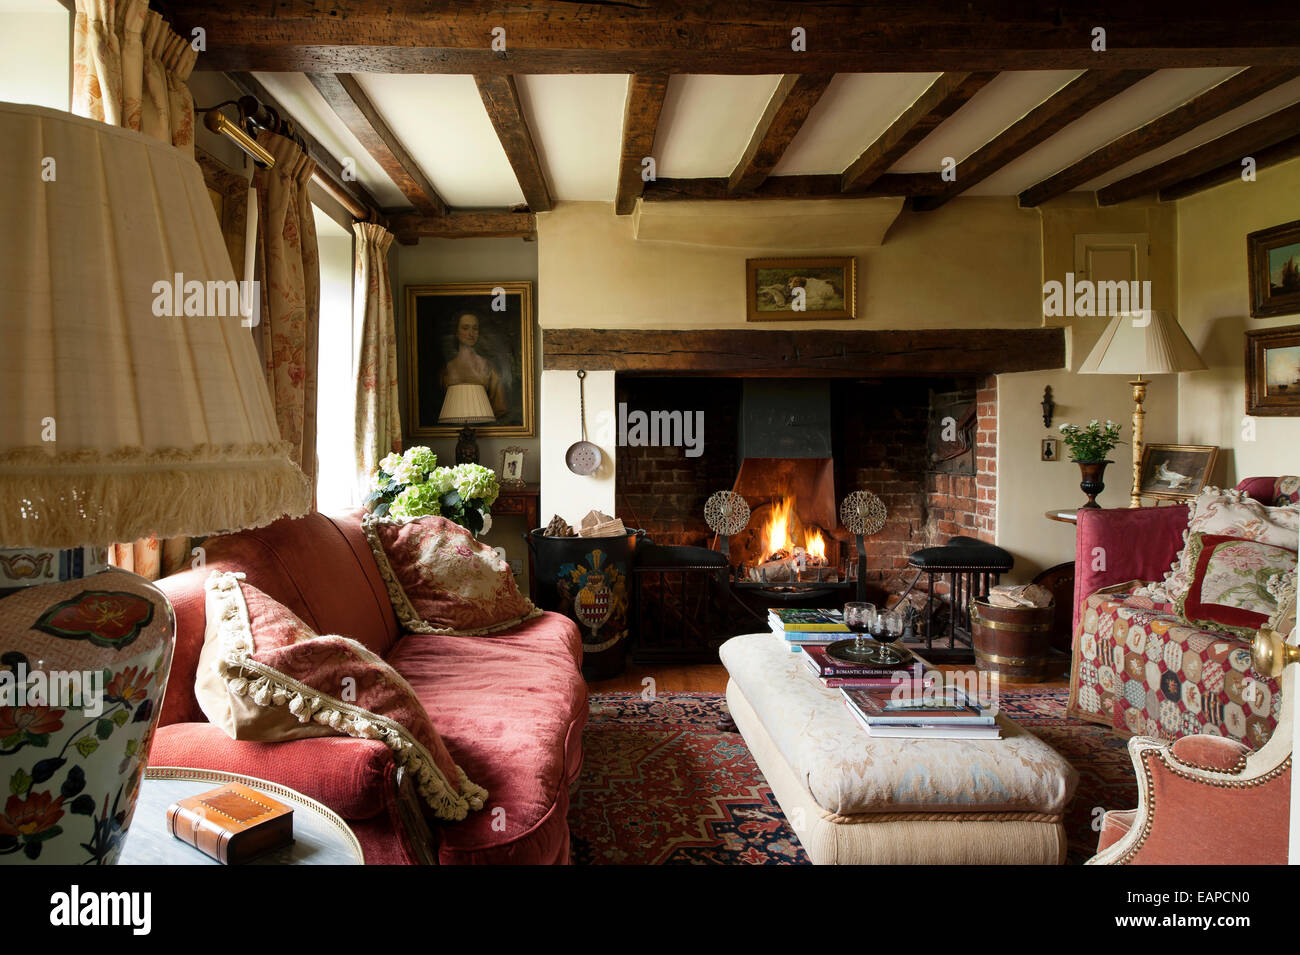 Cozy English And World Styled Sitting Room With: Inglenook Fireplace In Cosy Sitting Room With Original